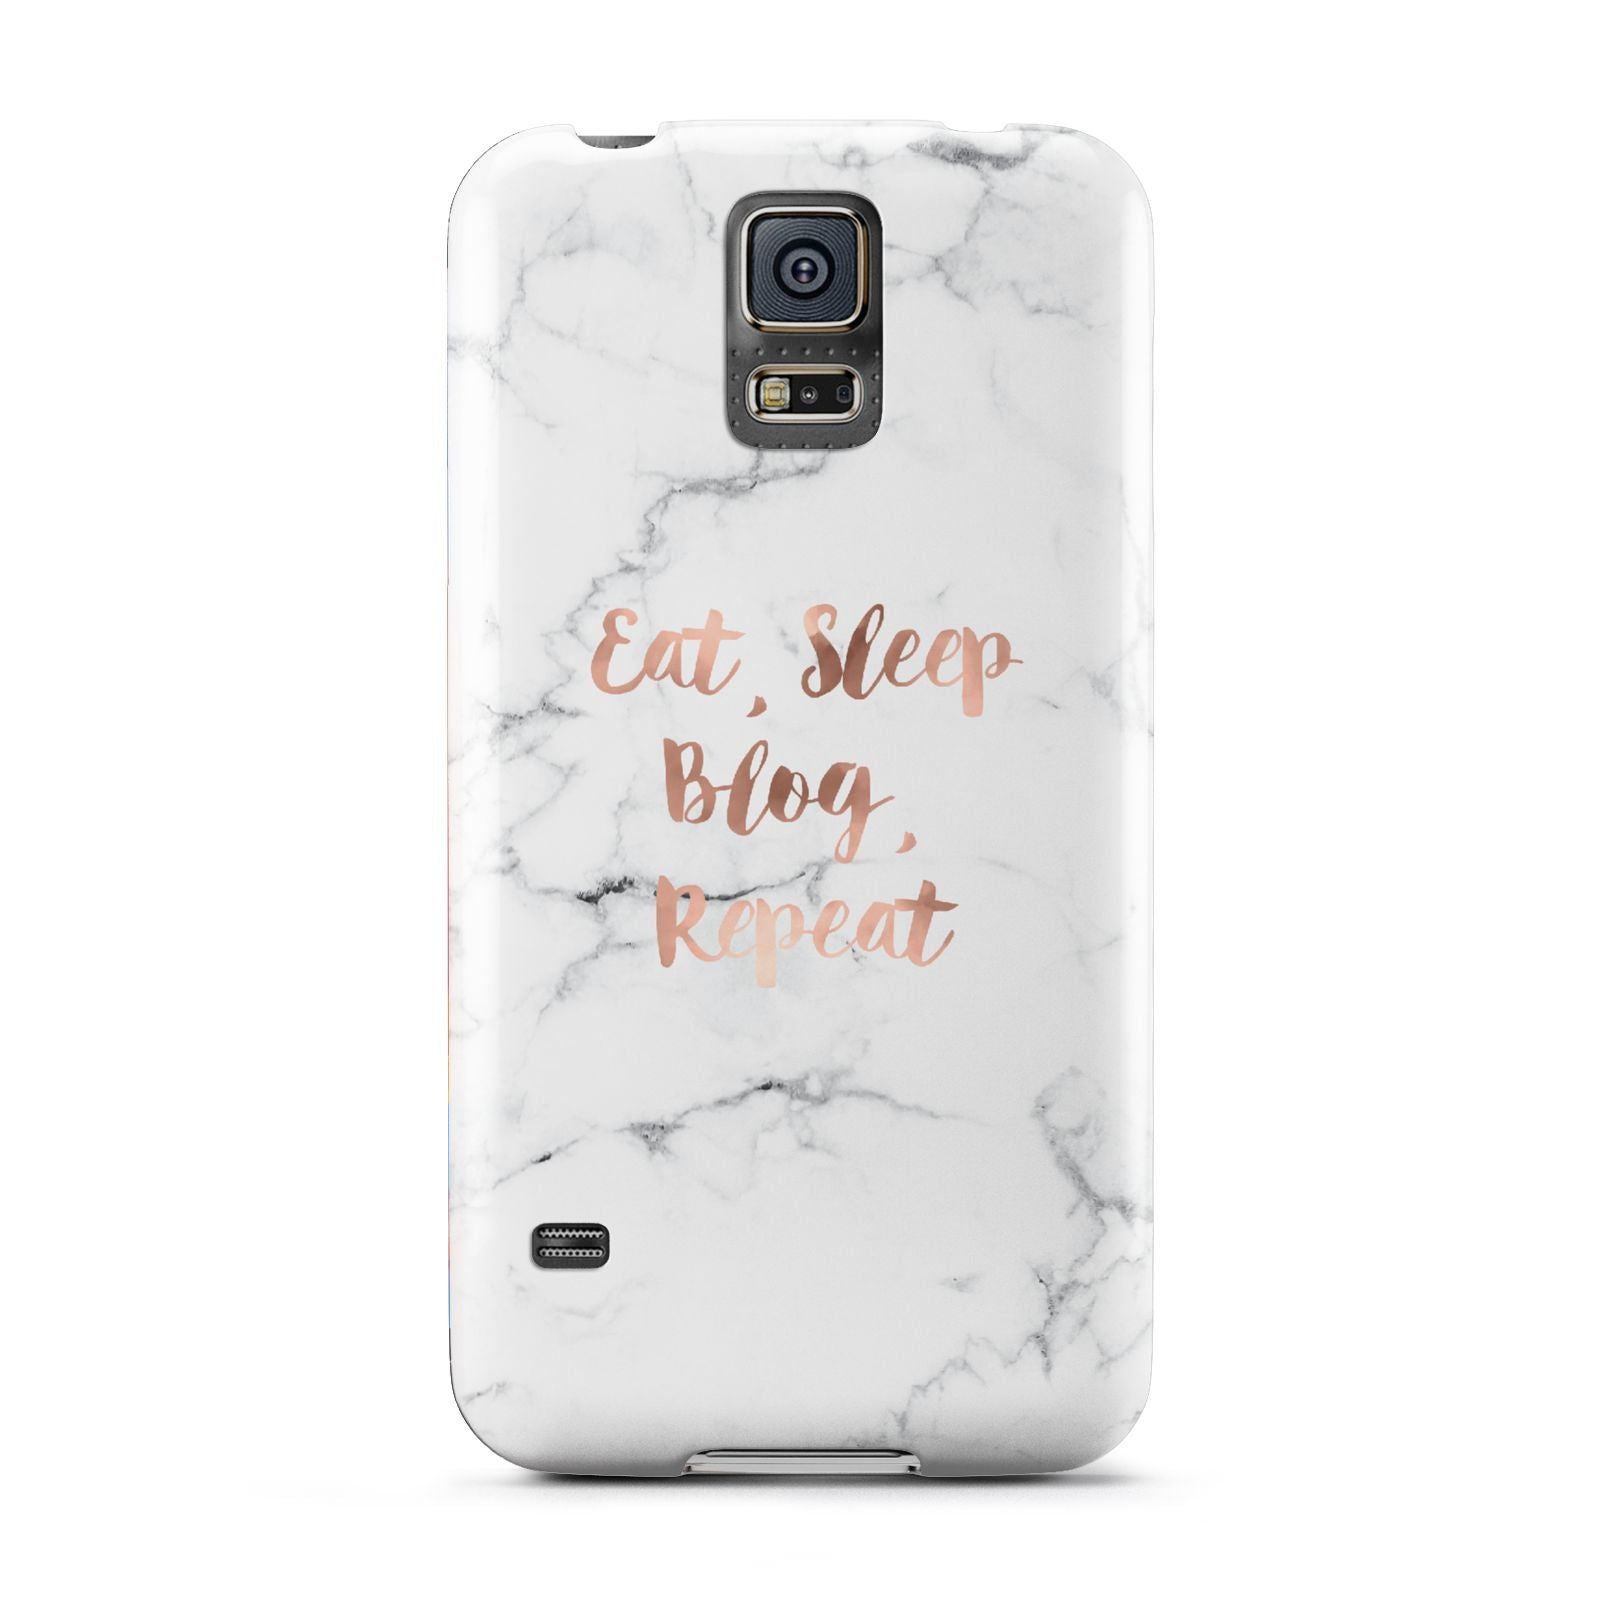 Eat Sleep Blog Repeat Marble Effect Samsung Galaxy S5 Case